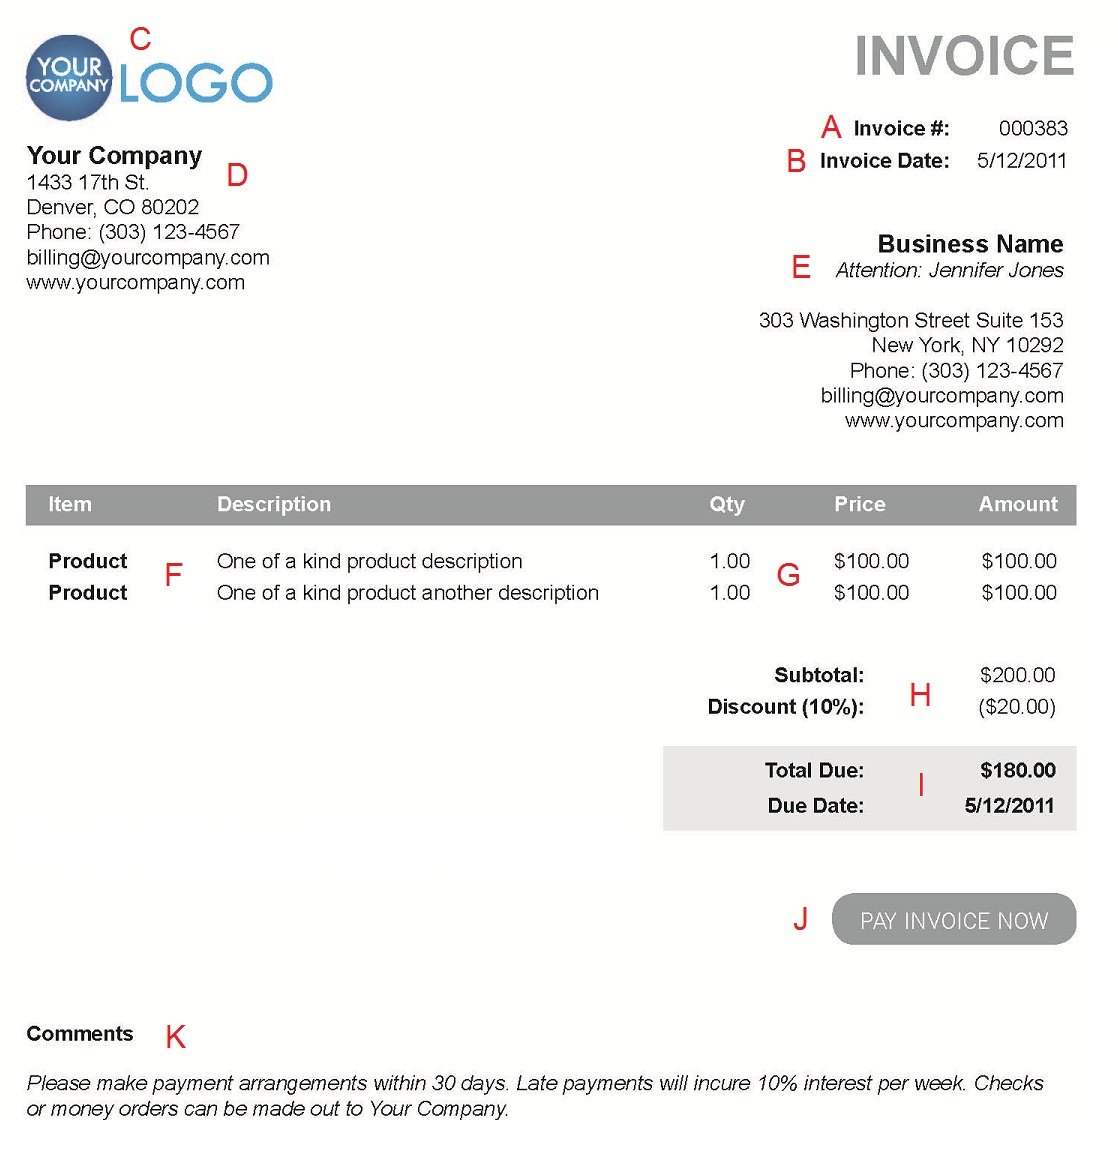 Aaaaeroincus  Surprising The  Different Sections Of An Electronic Payment Invoice With Engaging A  With Comely Company Receipt Sample Also Small Business Receipt In Addition Receipts And Payments Accounts And Online Tax Payment Receipt As Well As Receipt Letter Example Additionally Pork Receipts From Paysimplecom With Aaaaeroincus  Engaging The  Different Sections Of An Electronic Payment Invoice With Comely A  And Surprising Company Receipt Sample Also Small Business Receipt In Addition Receipts And Payments Accounts From Paysimplecom